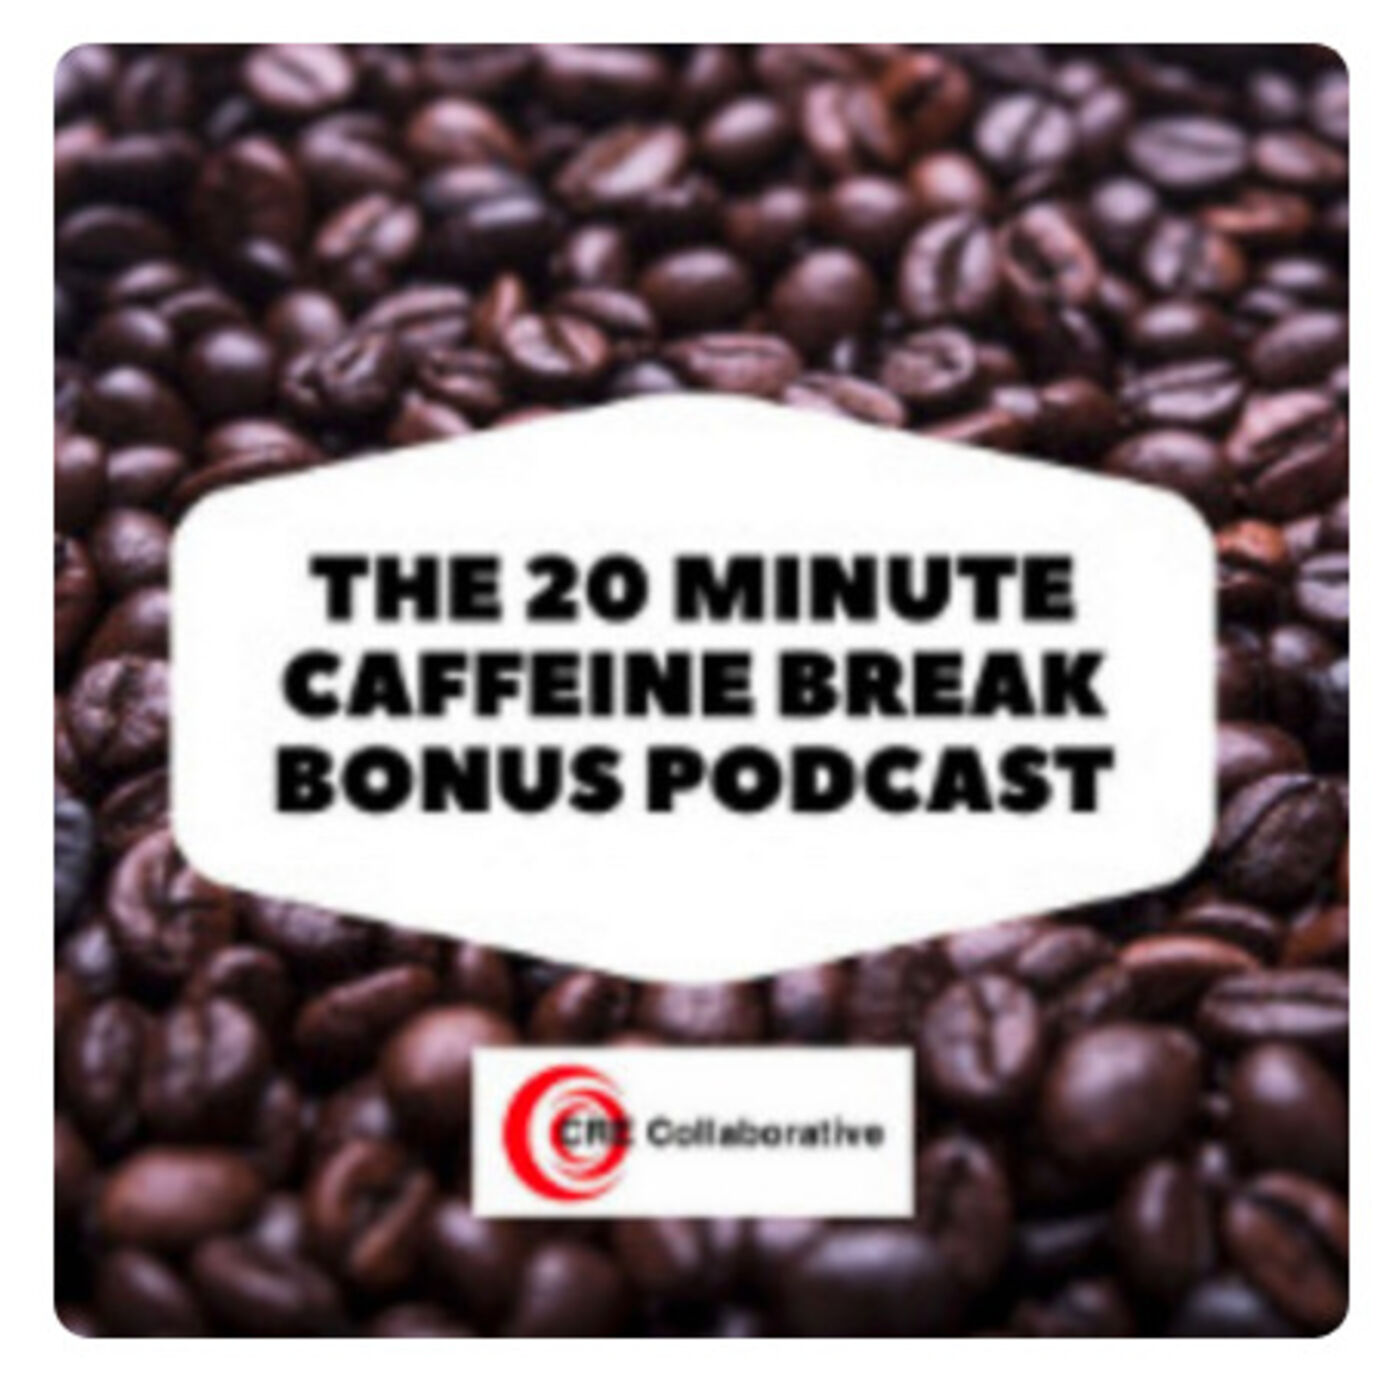 CAFFEINE BREAK - All you need to know about retail market shifts and technology in Commercial Real Estate to close more business